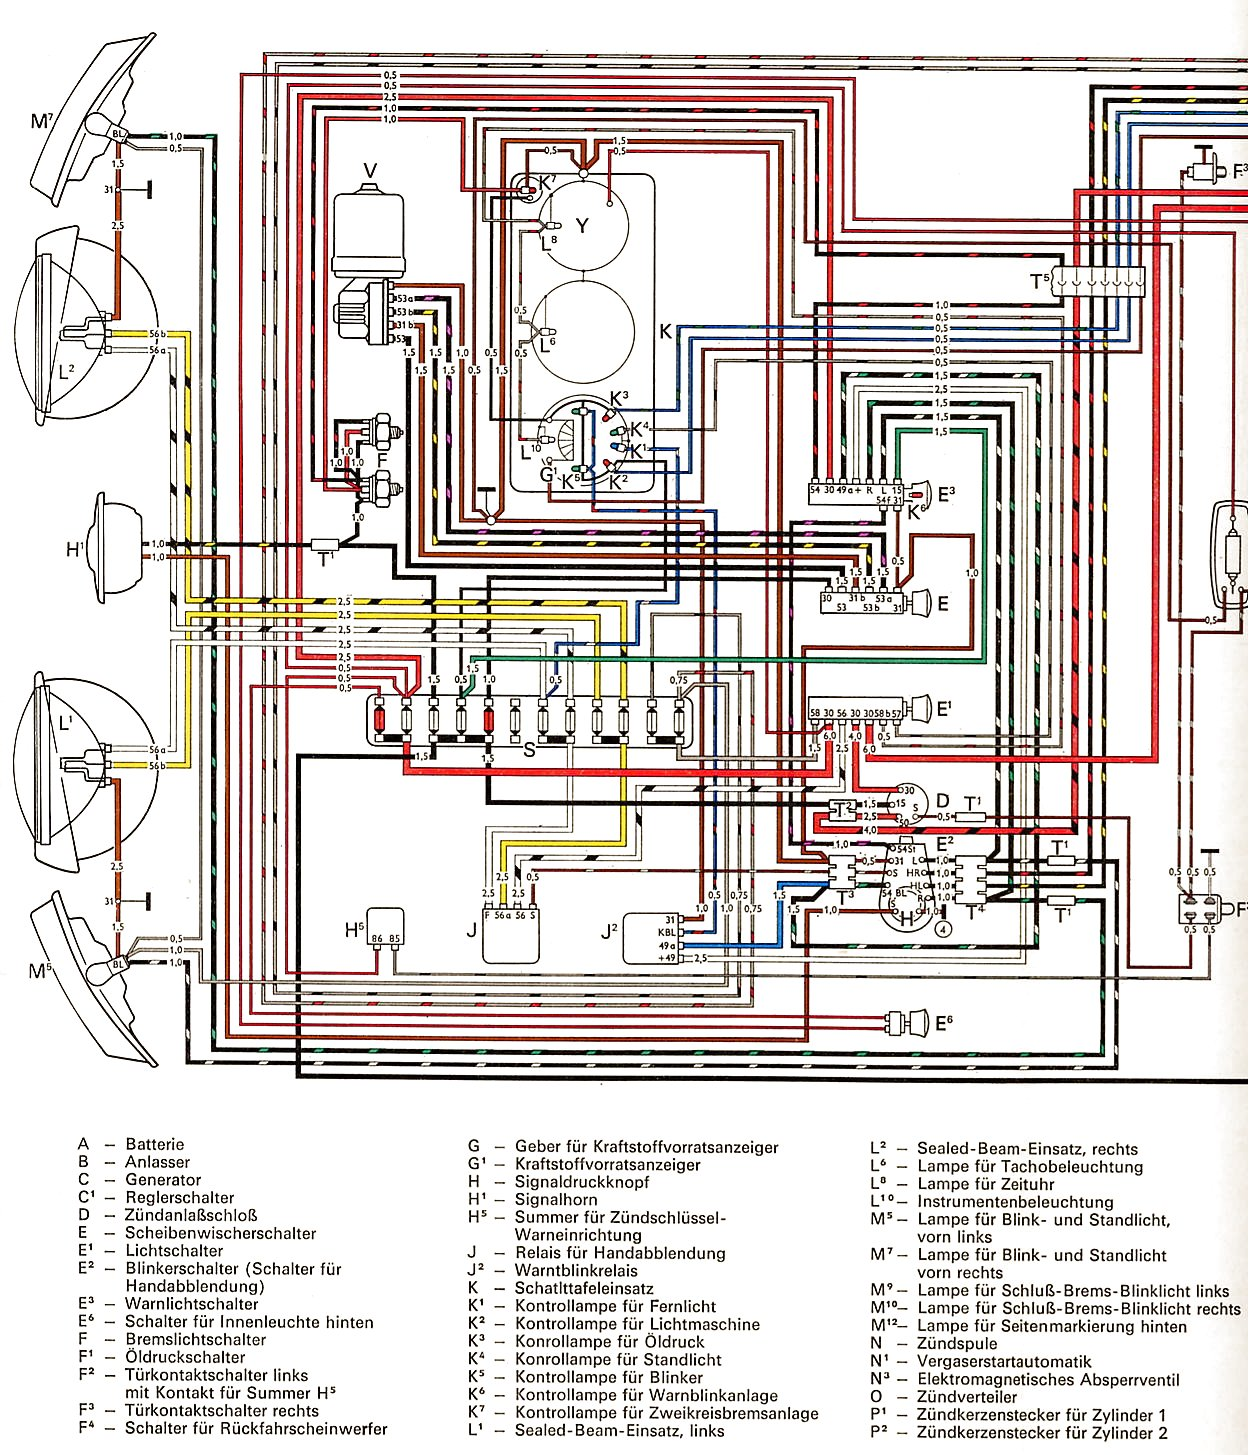 73 vw bug wiring diagram wirdig vw beetle engine wiring diagram get image about wiring diagram